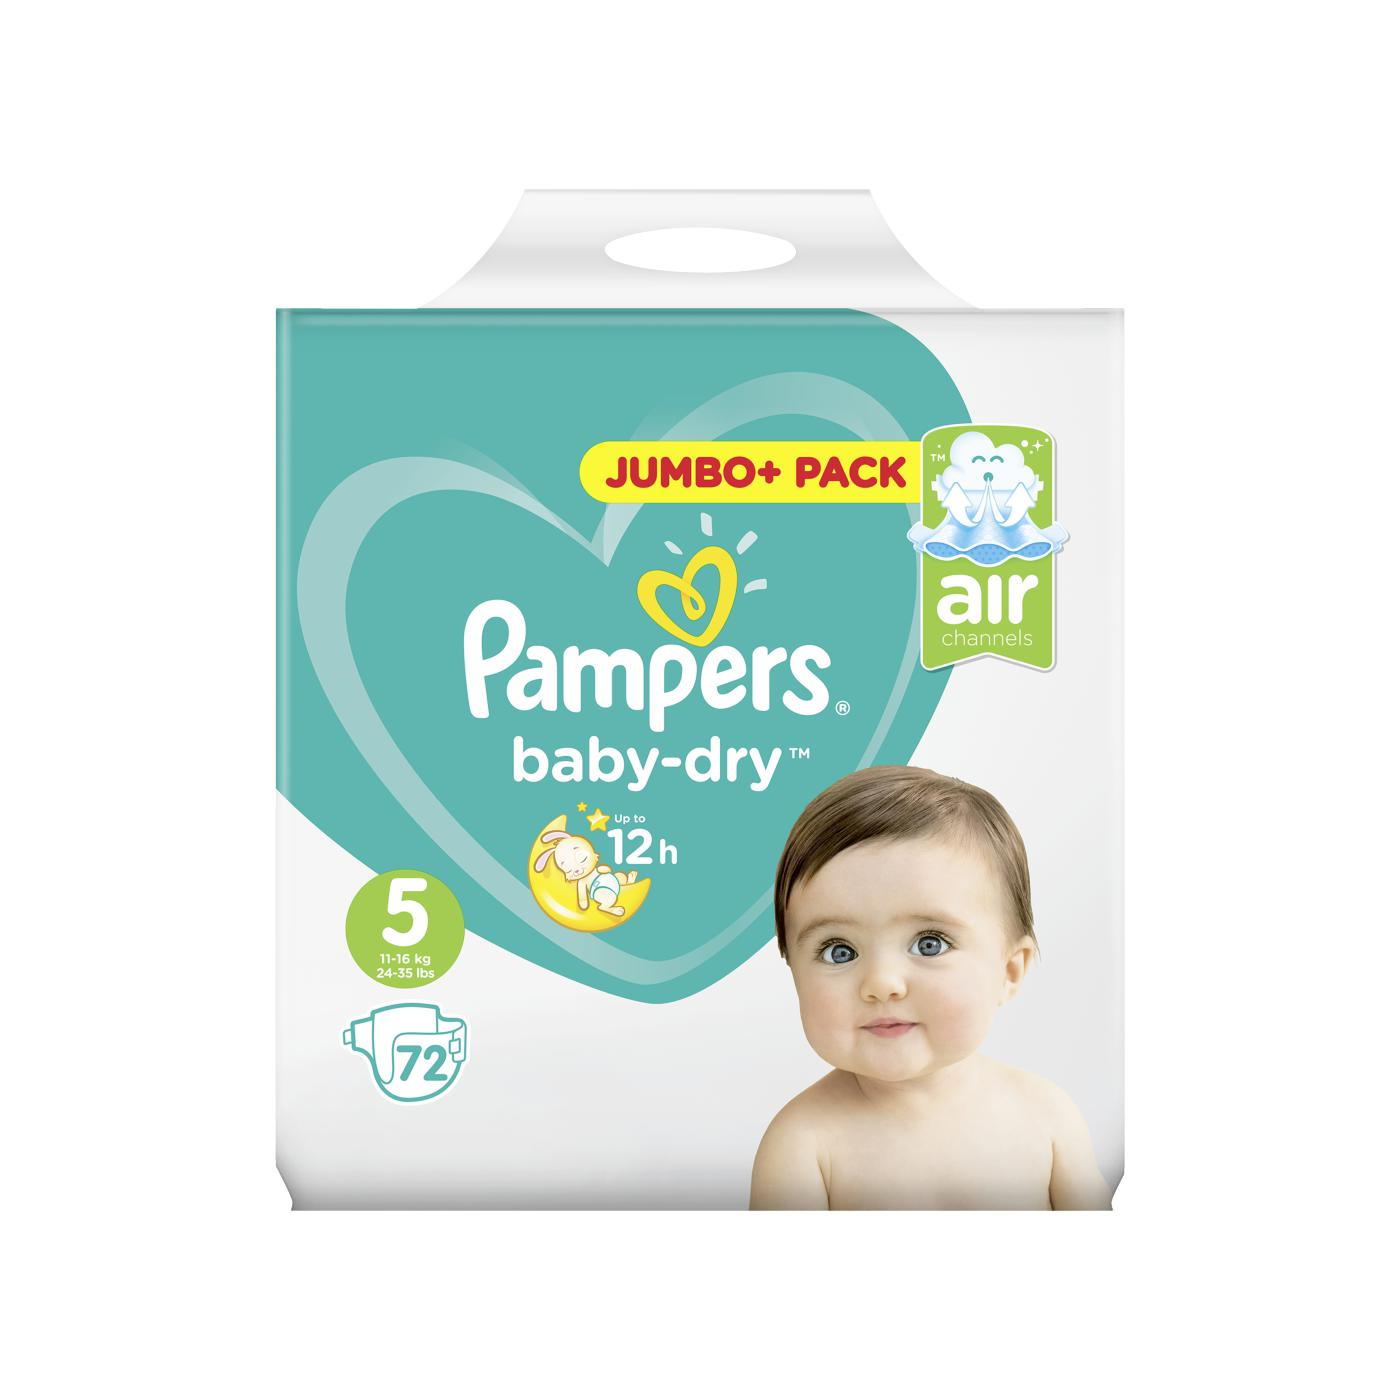 pampers baby dry windeln baby dry jumbo plus pack gr e 5 junior online g nstig kaufen. Black Bedroom Furniture Sets. Home Design Ideas